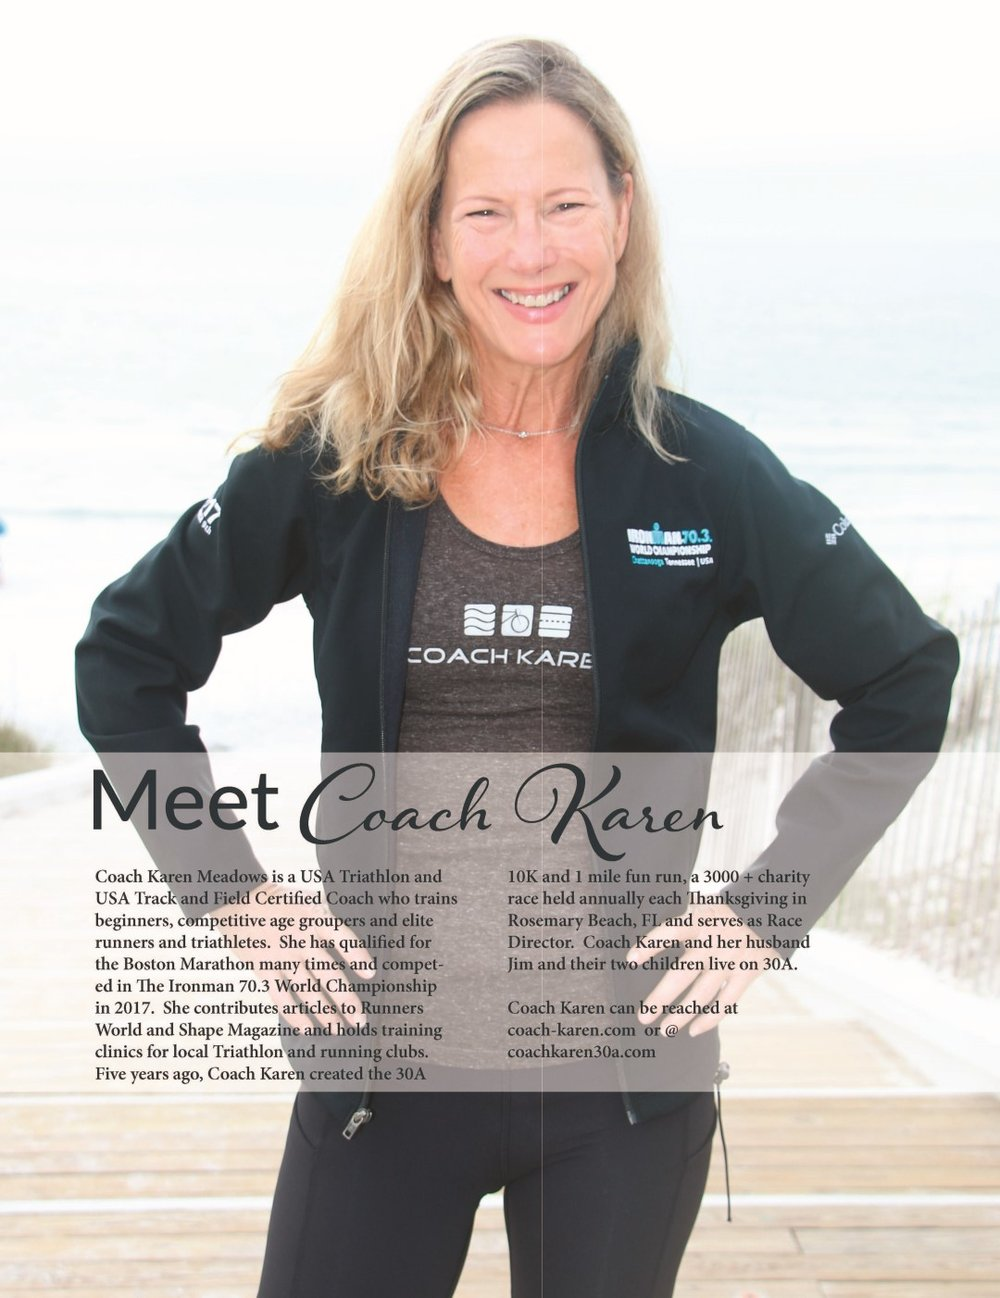 Coach Karen blog_Page_1 (Large).jpg